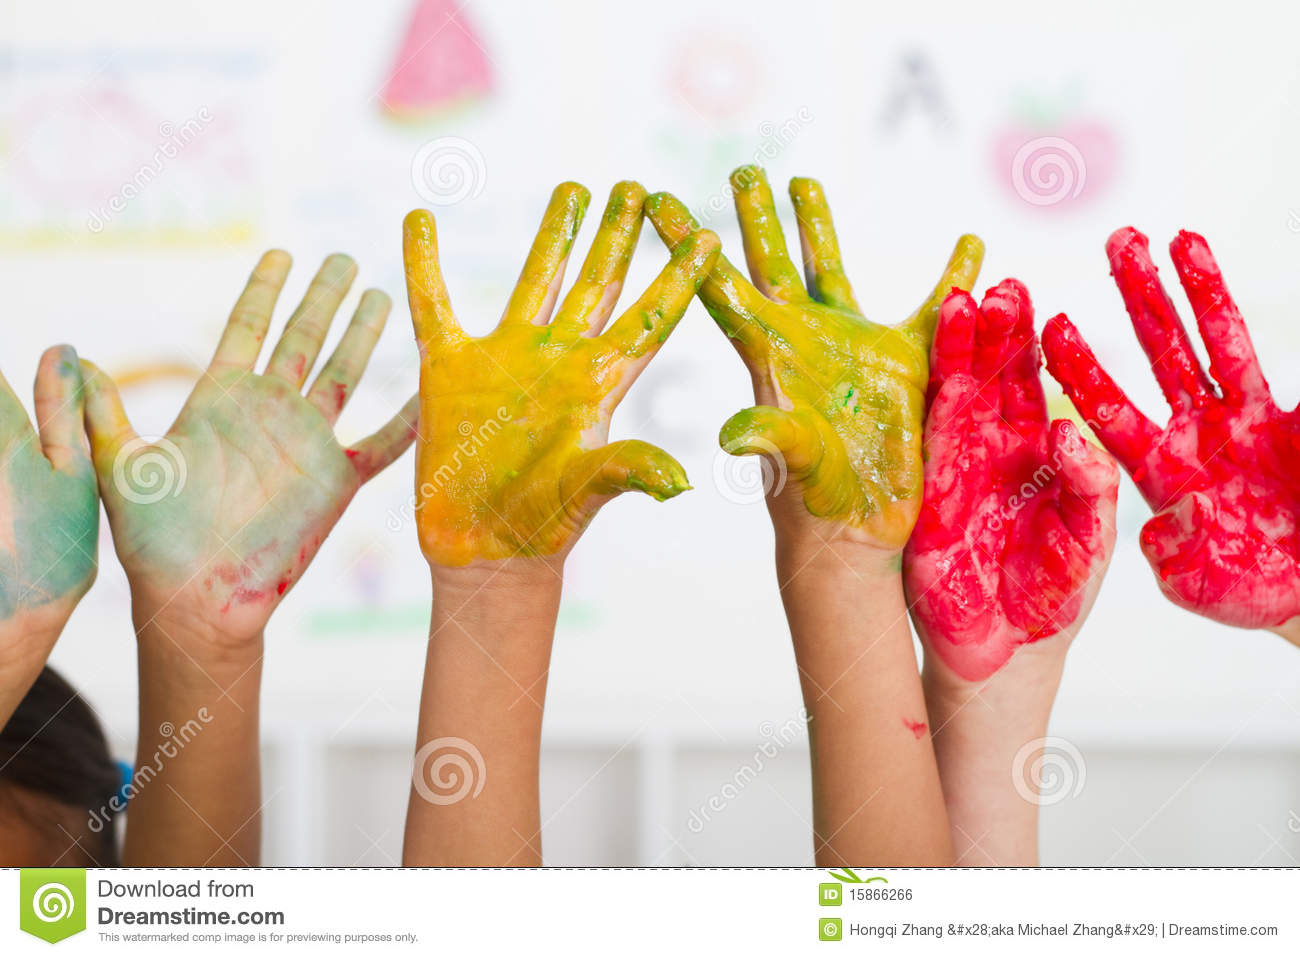 kids hands paint royalty free stock image - Kids Paint Free